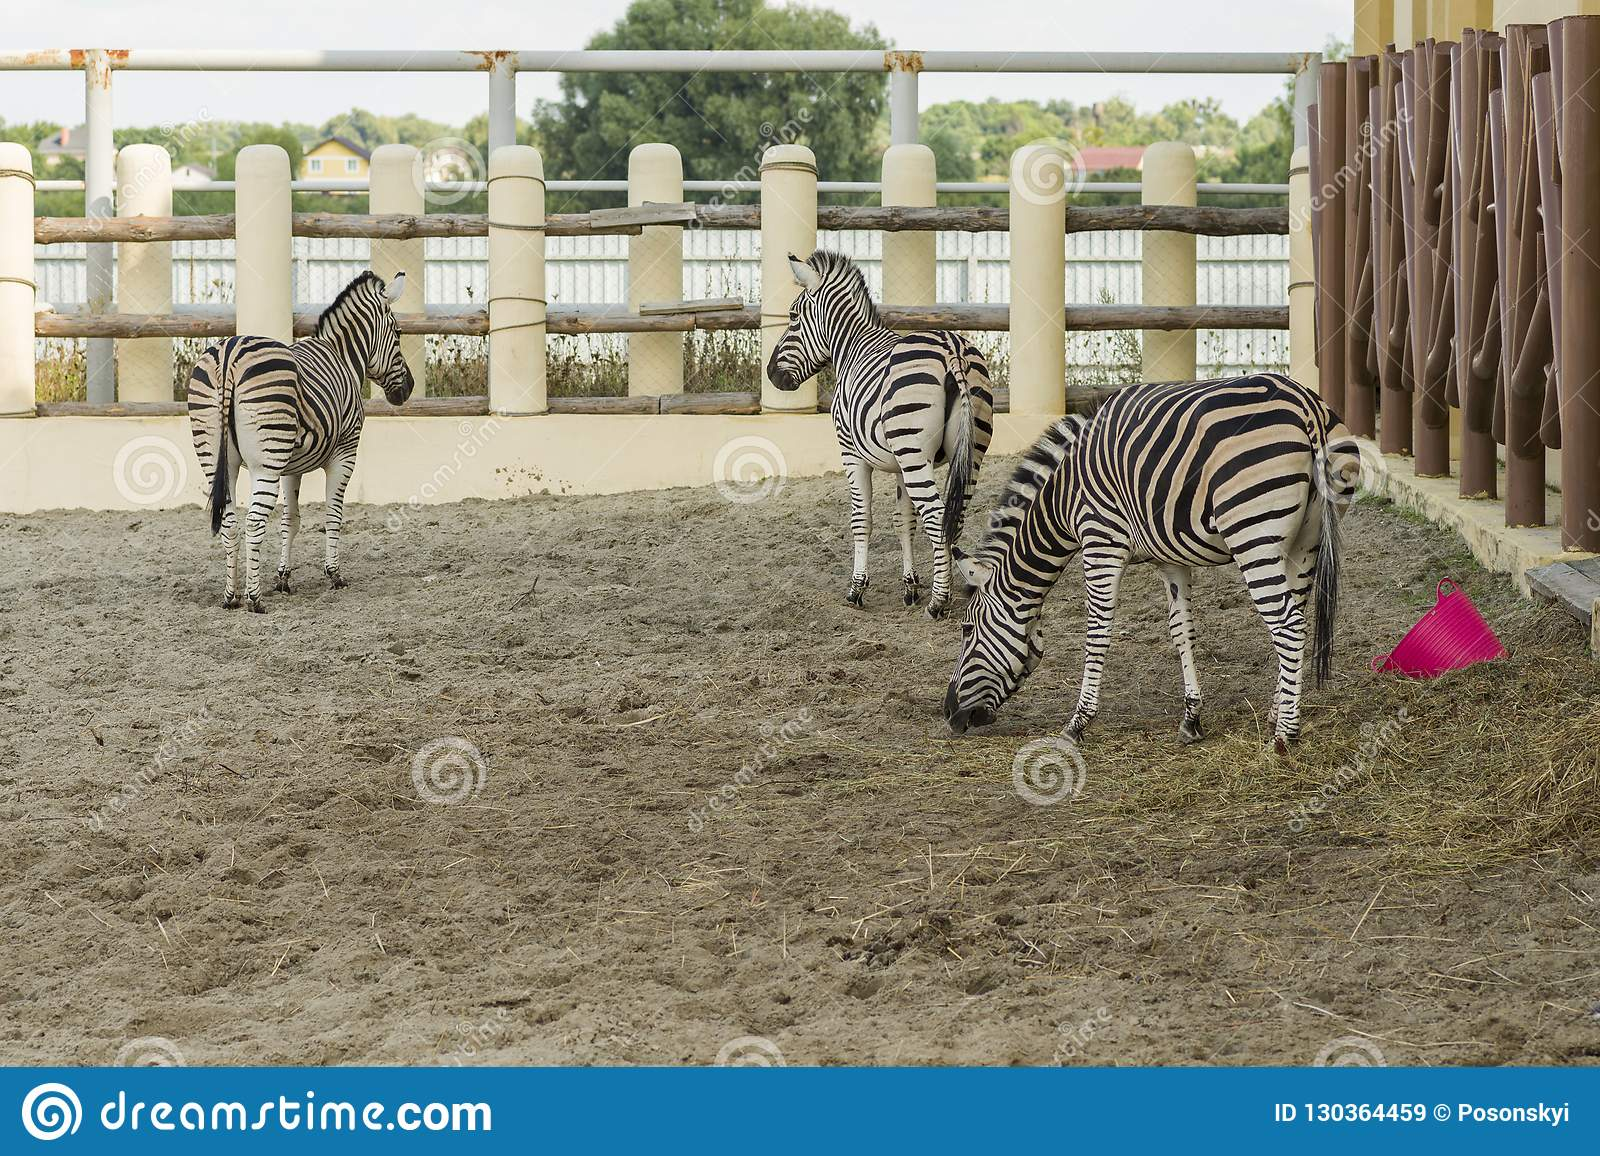 African striped zebras in the zoo